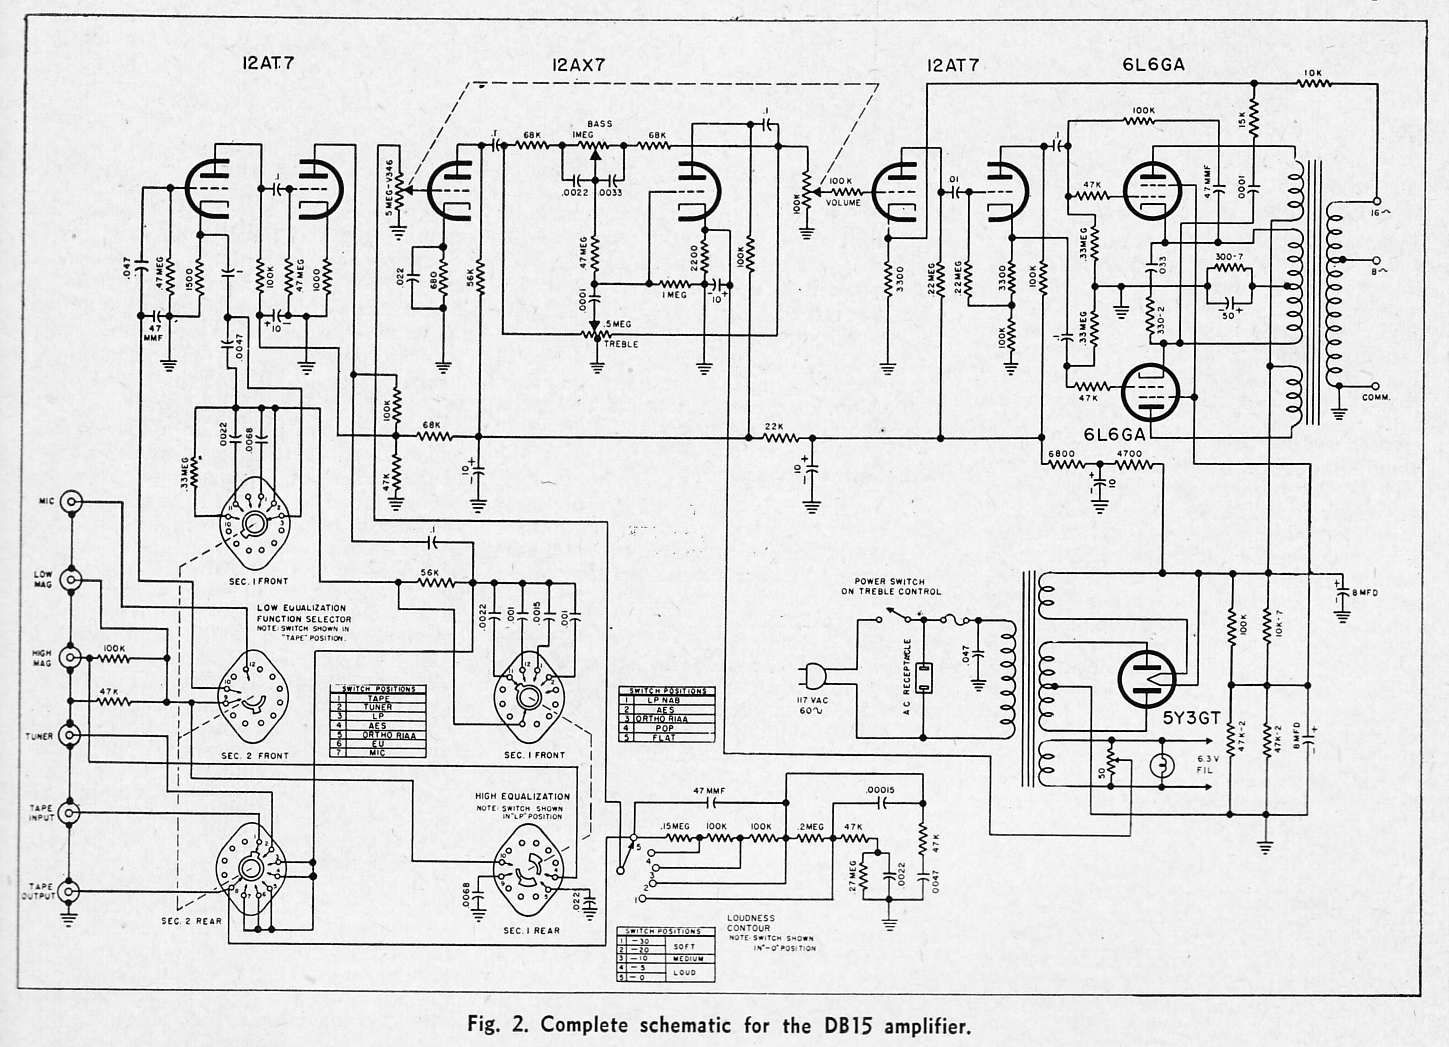 1969 Pontiac Firebird Ignition Wiring Diagram in addition 1970 Pontiac Le Mans Wiring Schematic moreover Dragster Wiring Kit further Wiring Diagram For 2002 Pontiac Bonneville together with 1966 Mustang Engine Partment Wiring Diagram. on pontiac catalina